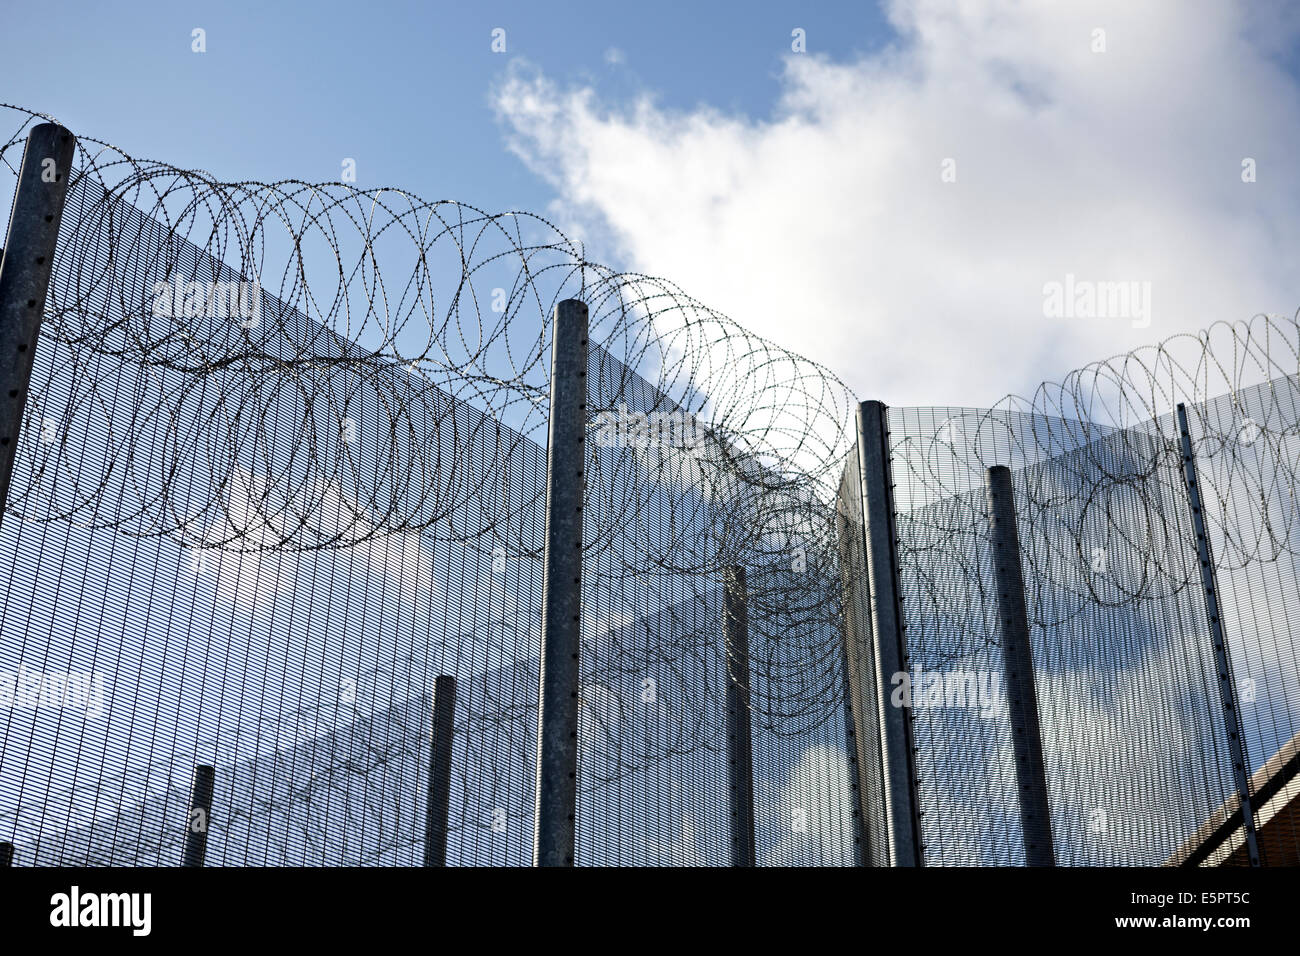 High security fencing, razor and barbed wire around the perimeter of ...